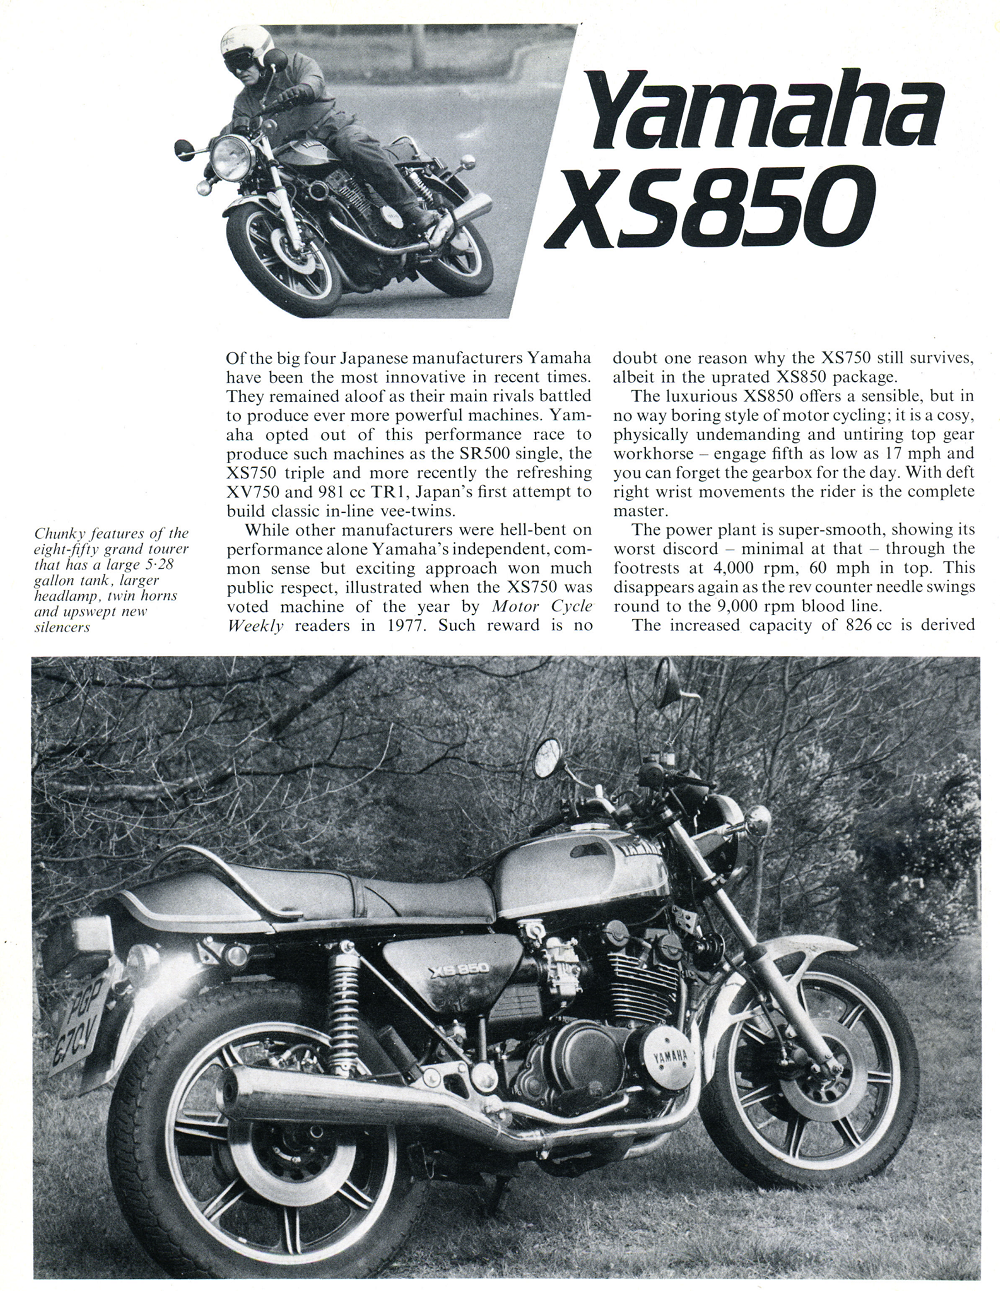 1982 Yamaha XS850 road test. 1.jpg